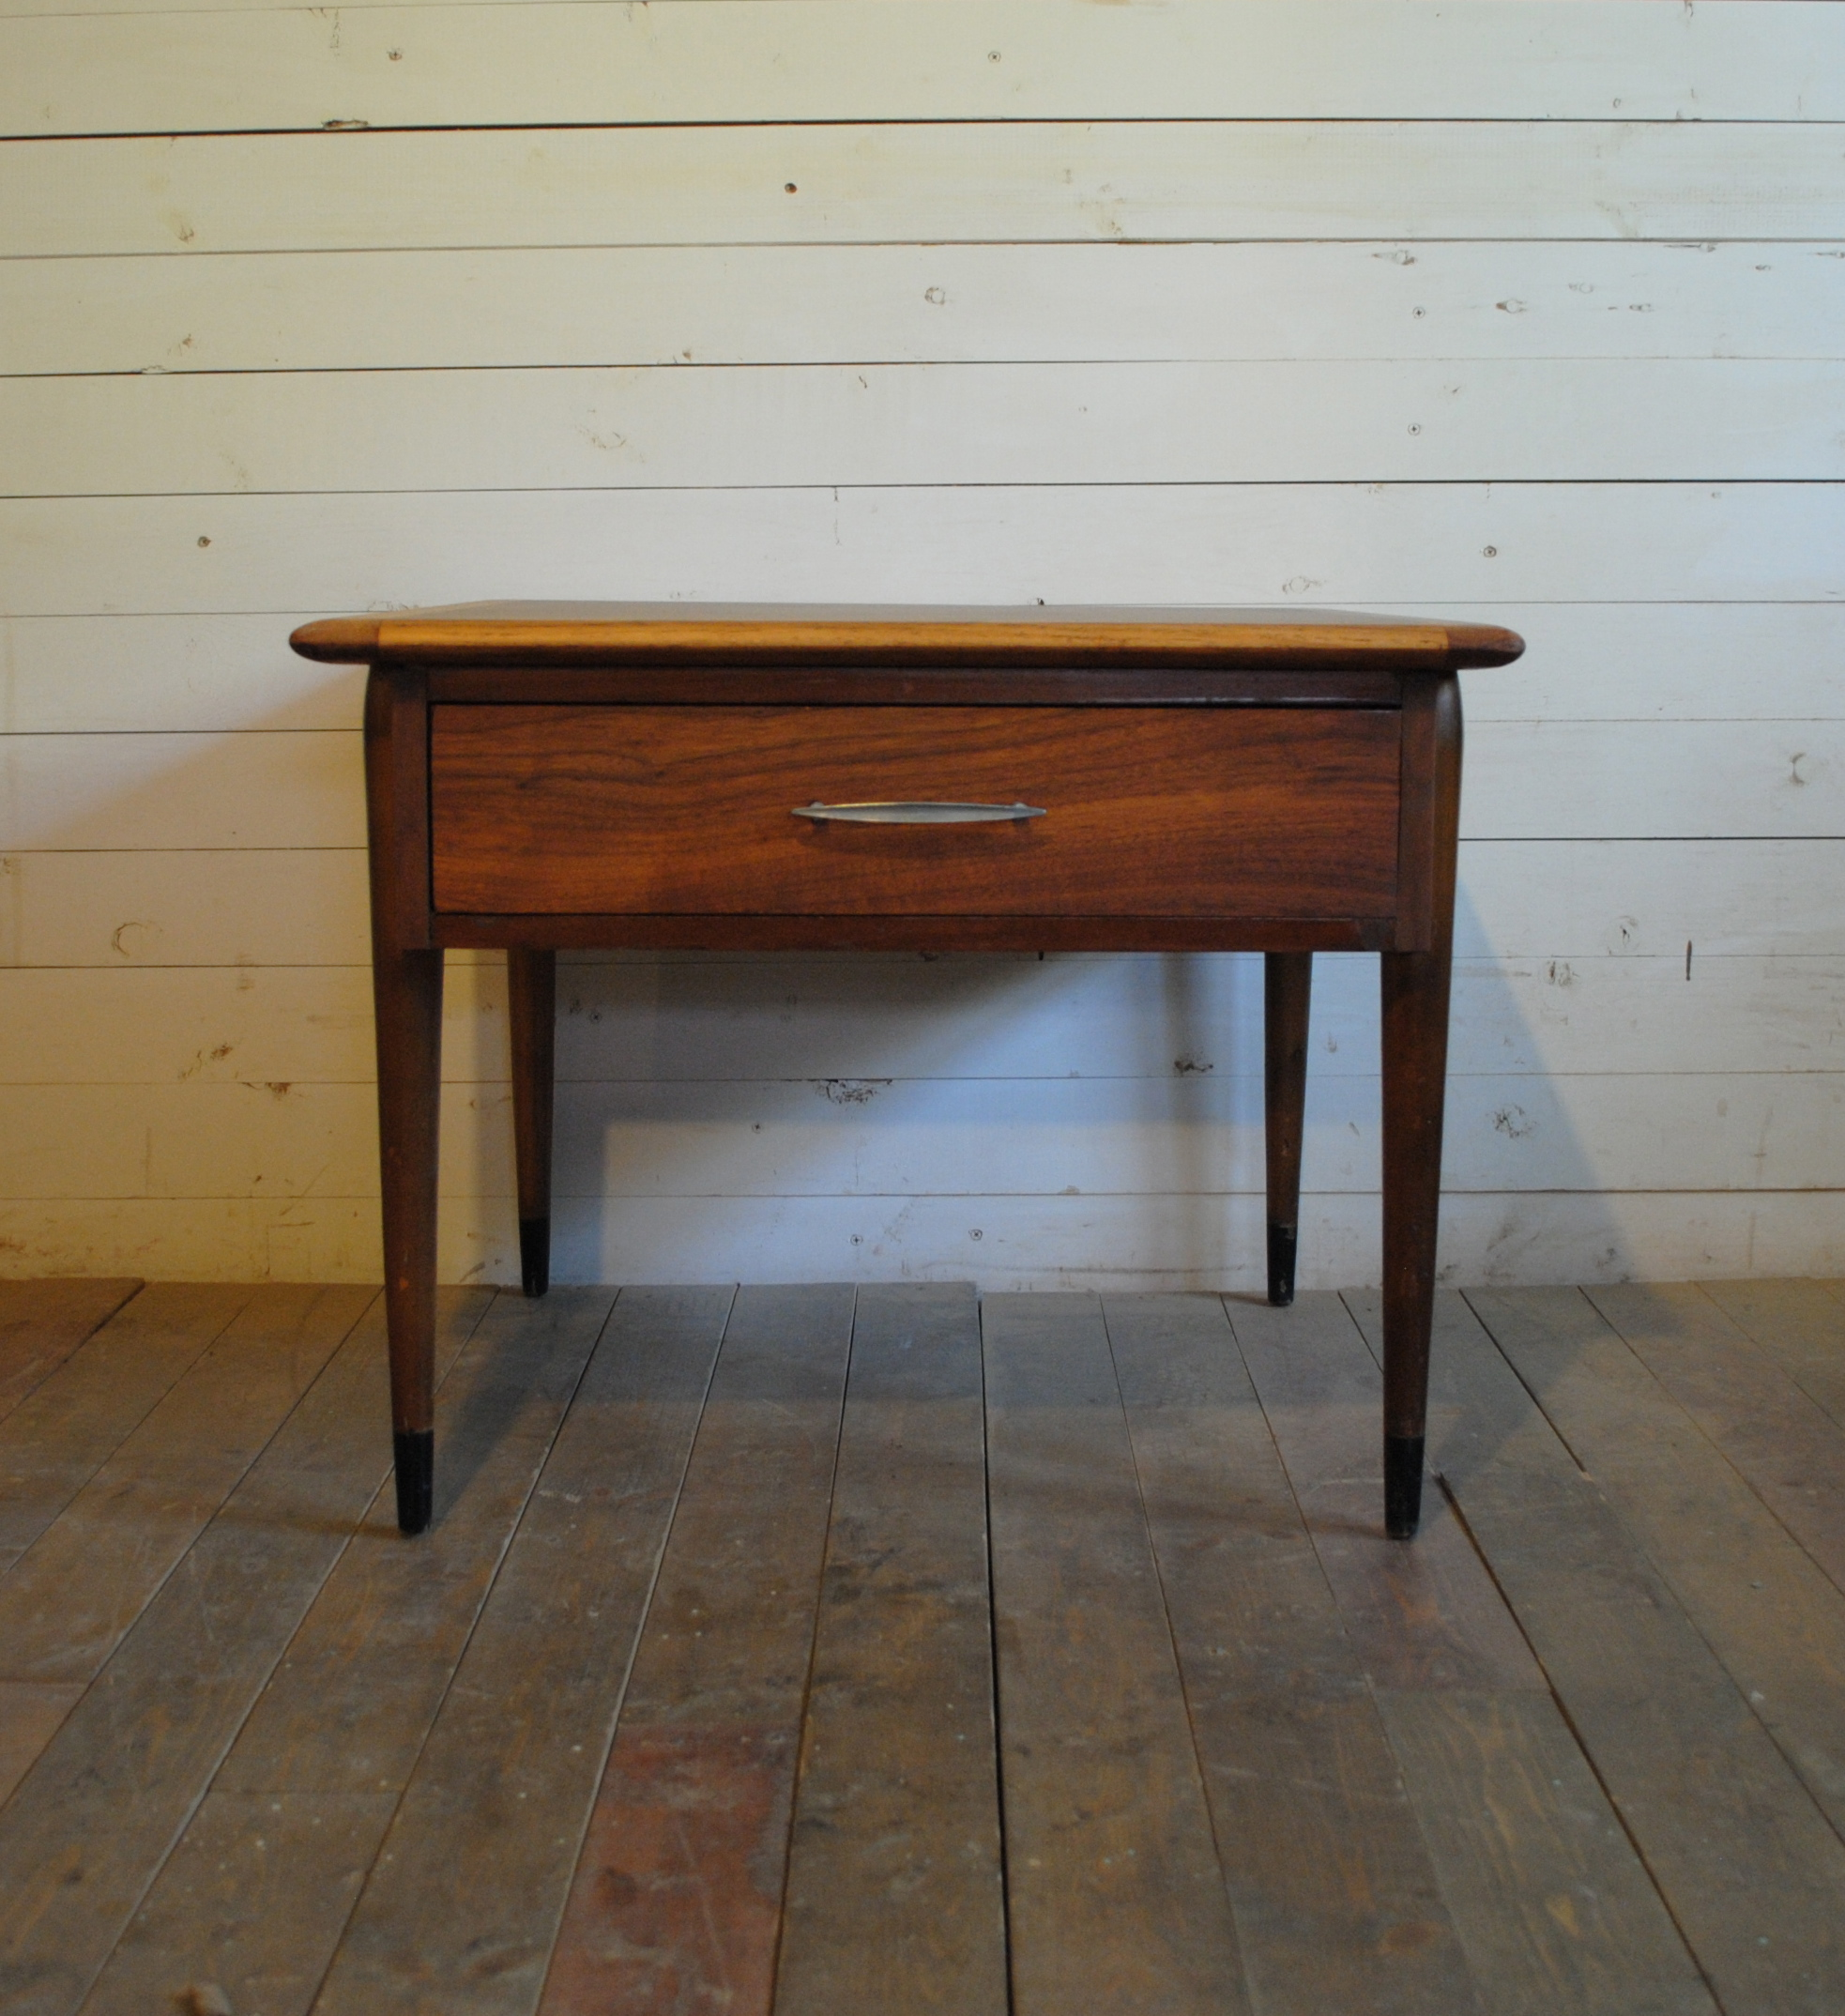 beautiful mid century walnut and oak end table nightstand dimensions are 26u2033w x 26u2033d x 20u2033h please contact me with any questions